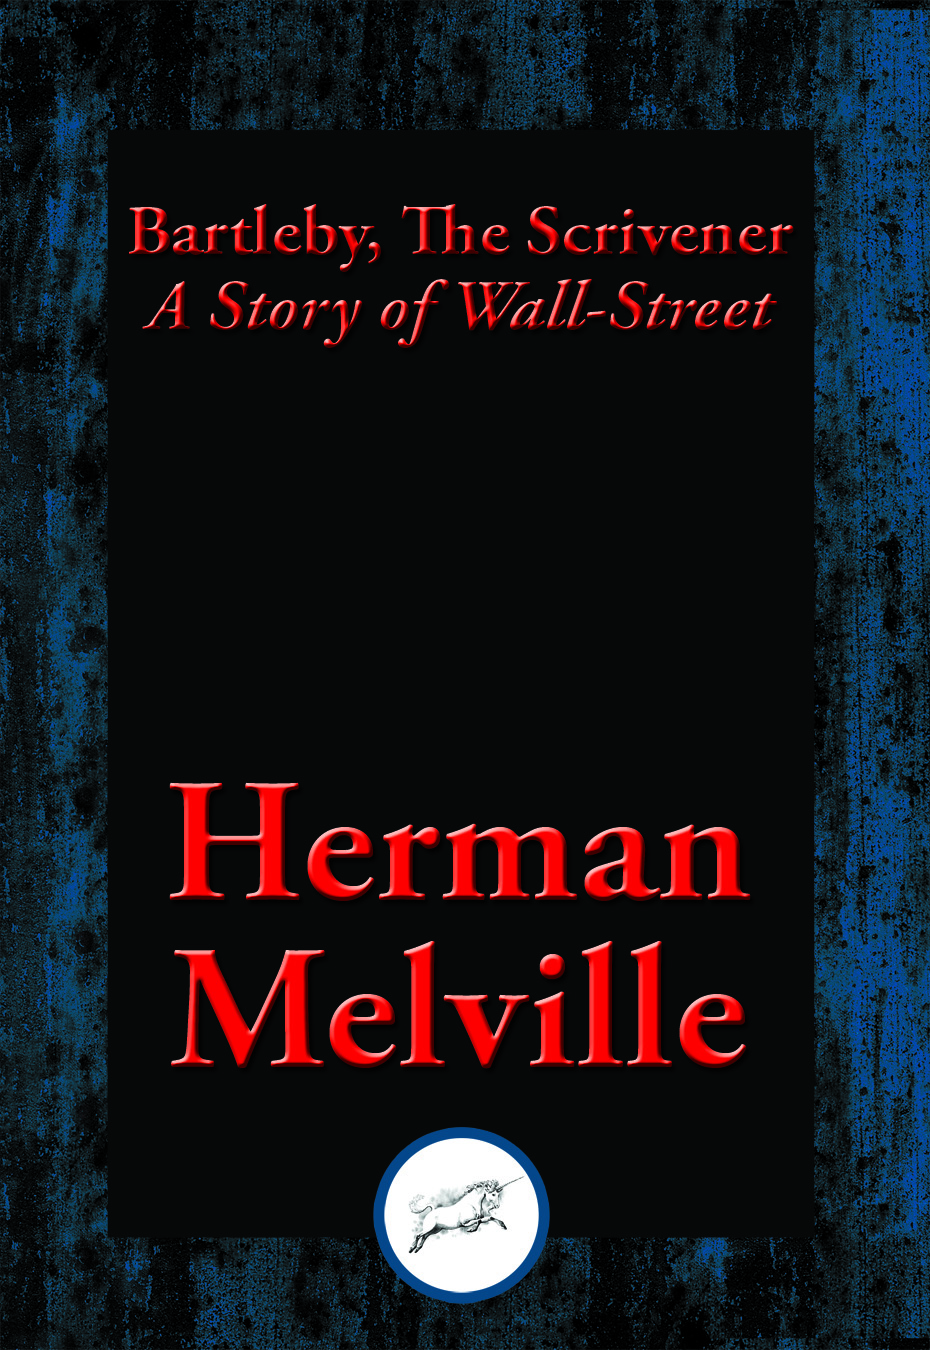 essay on bartleby the scrivener